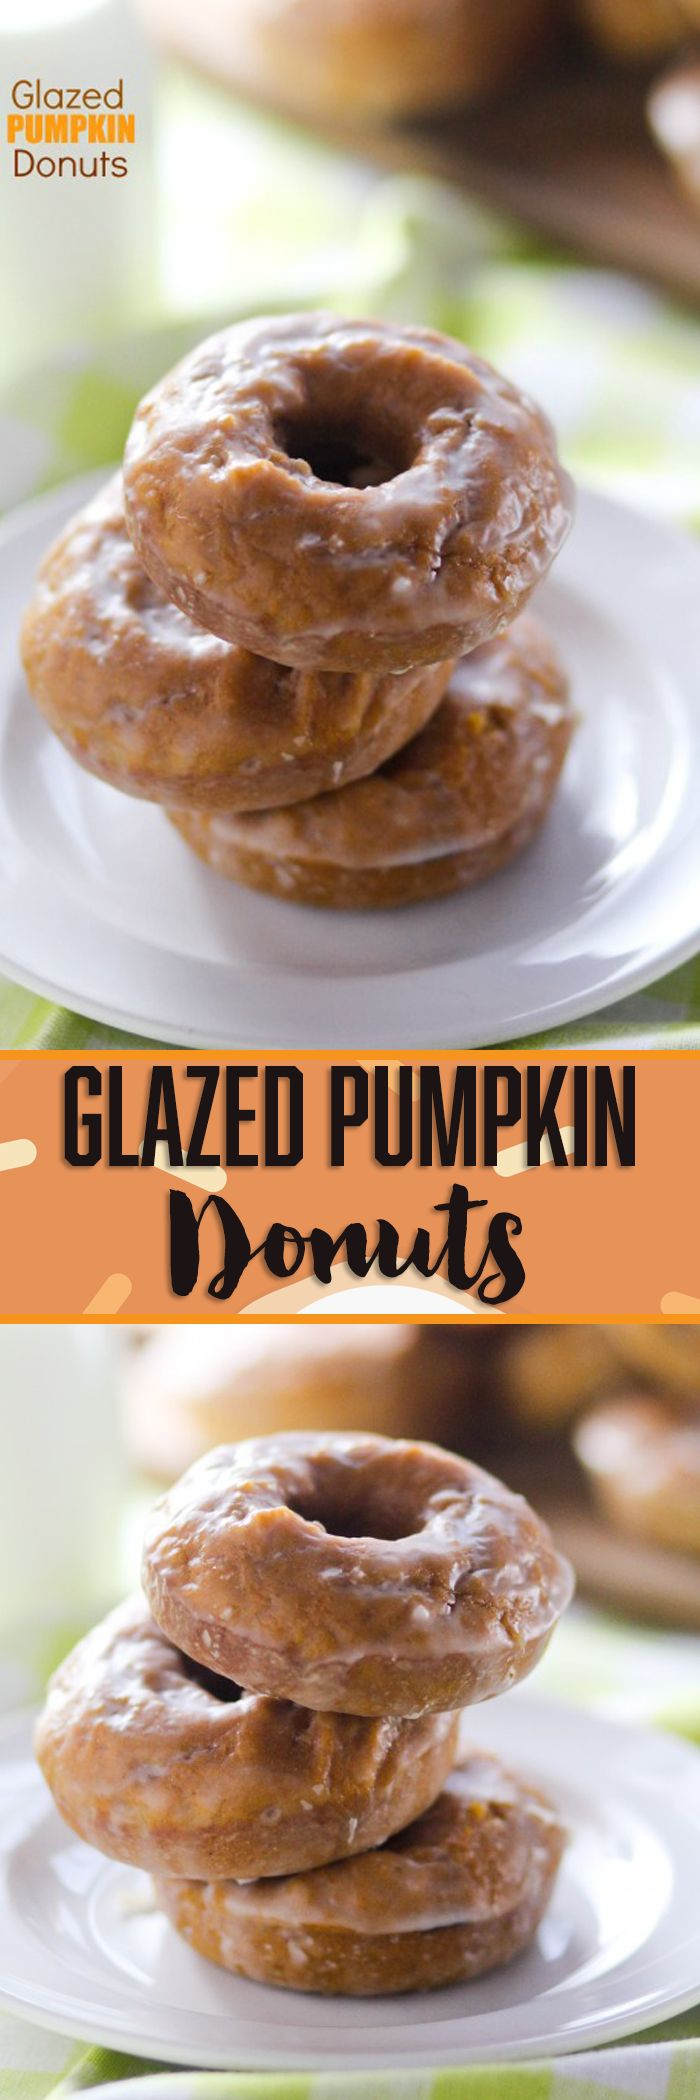 Glazed Pumpkin Donuts -- these BAKE UP (BAKE!!) in the oven in about SEVEN MINUTES!!! No crazy ingredients and totally doable for a weekday morning. LOVE!!!